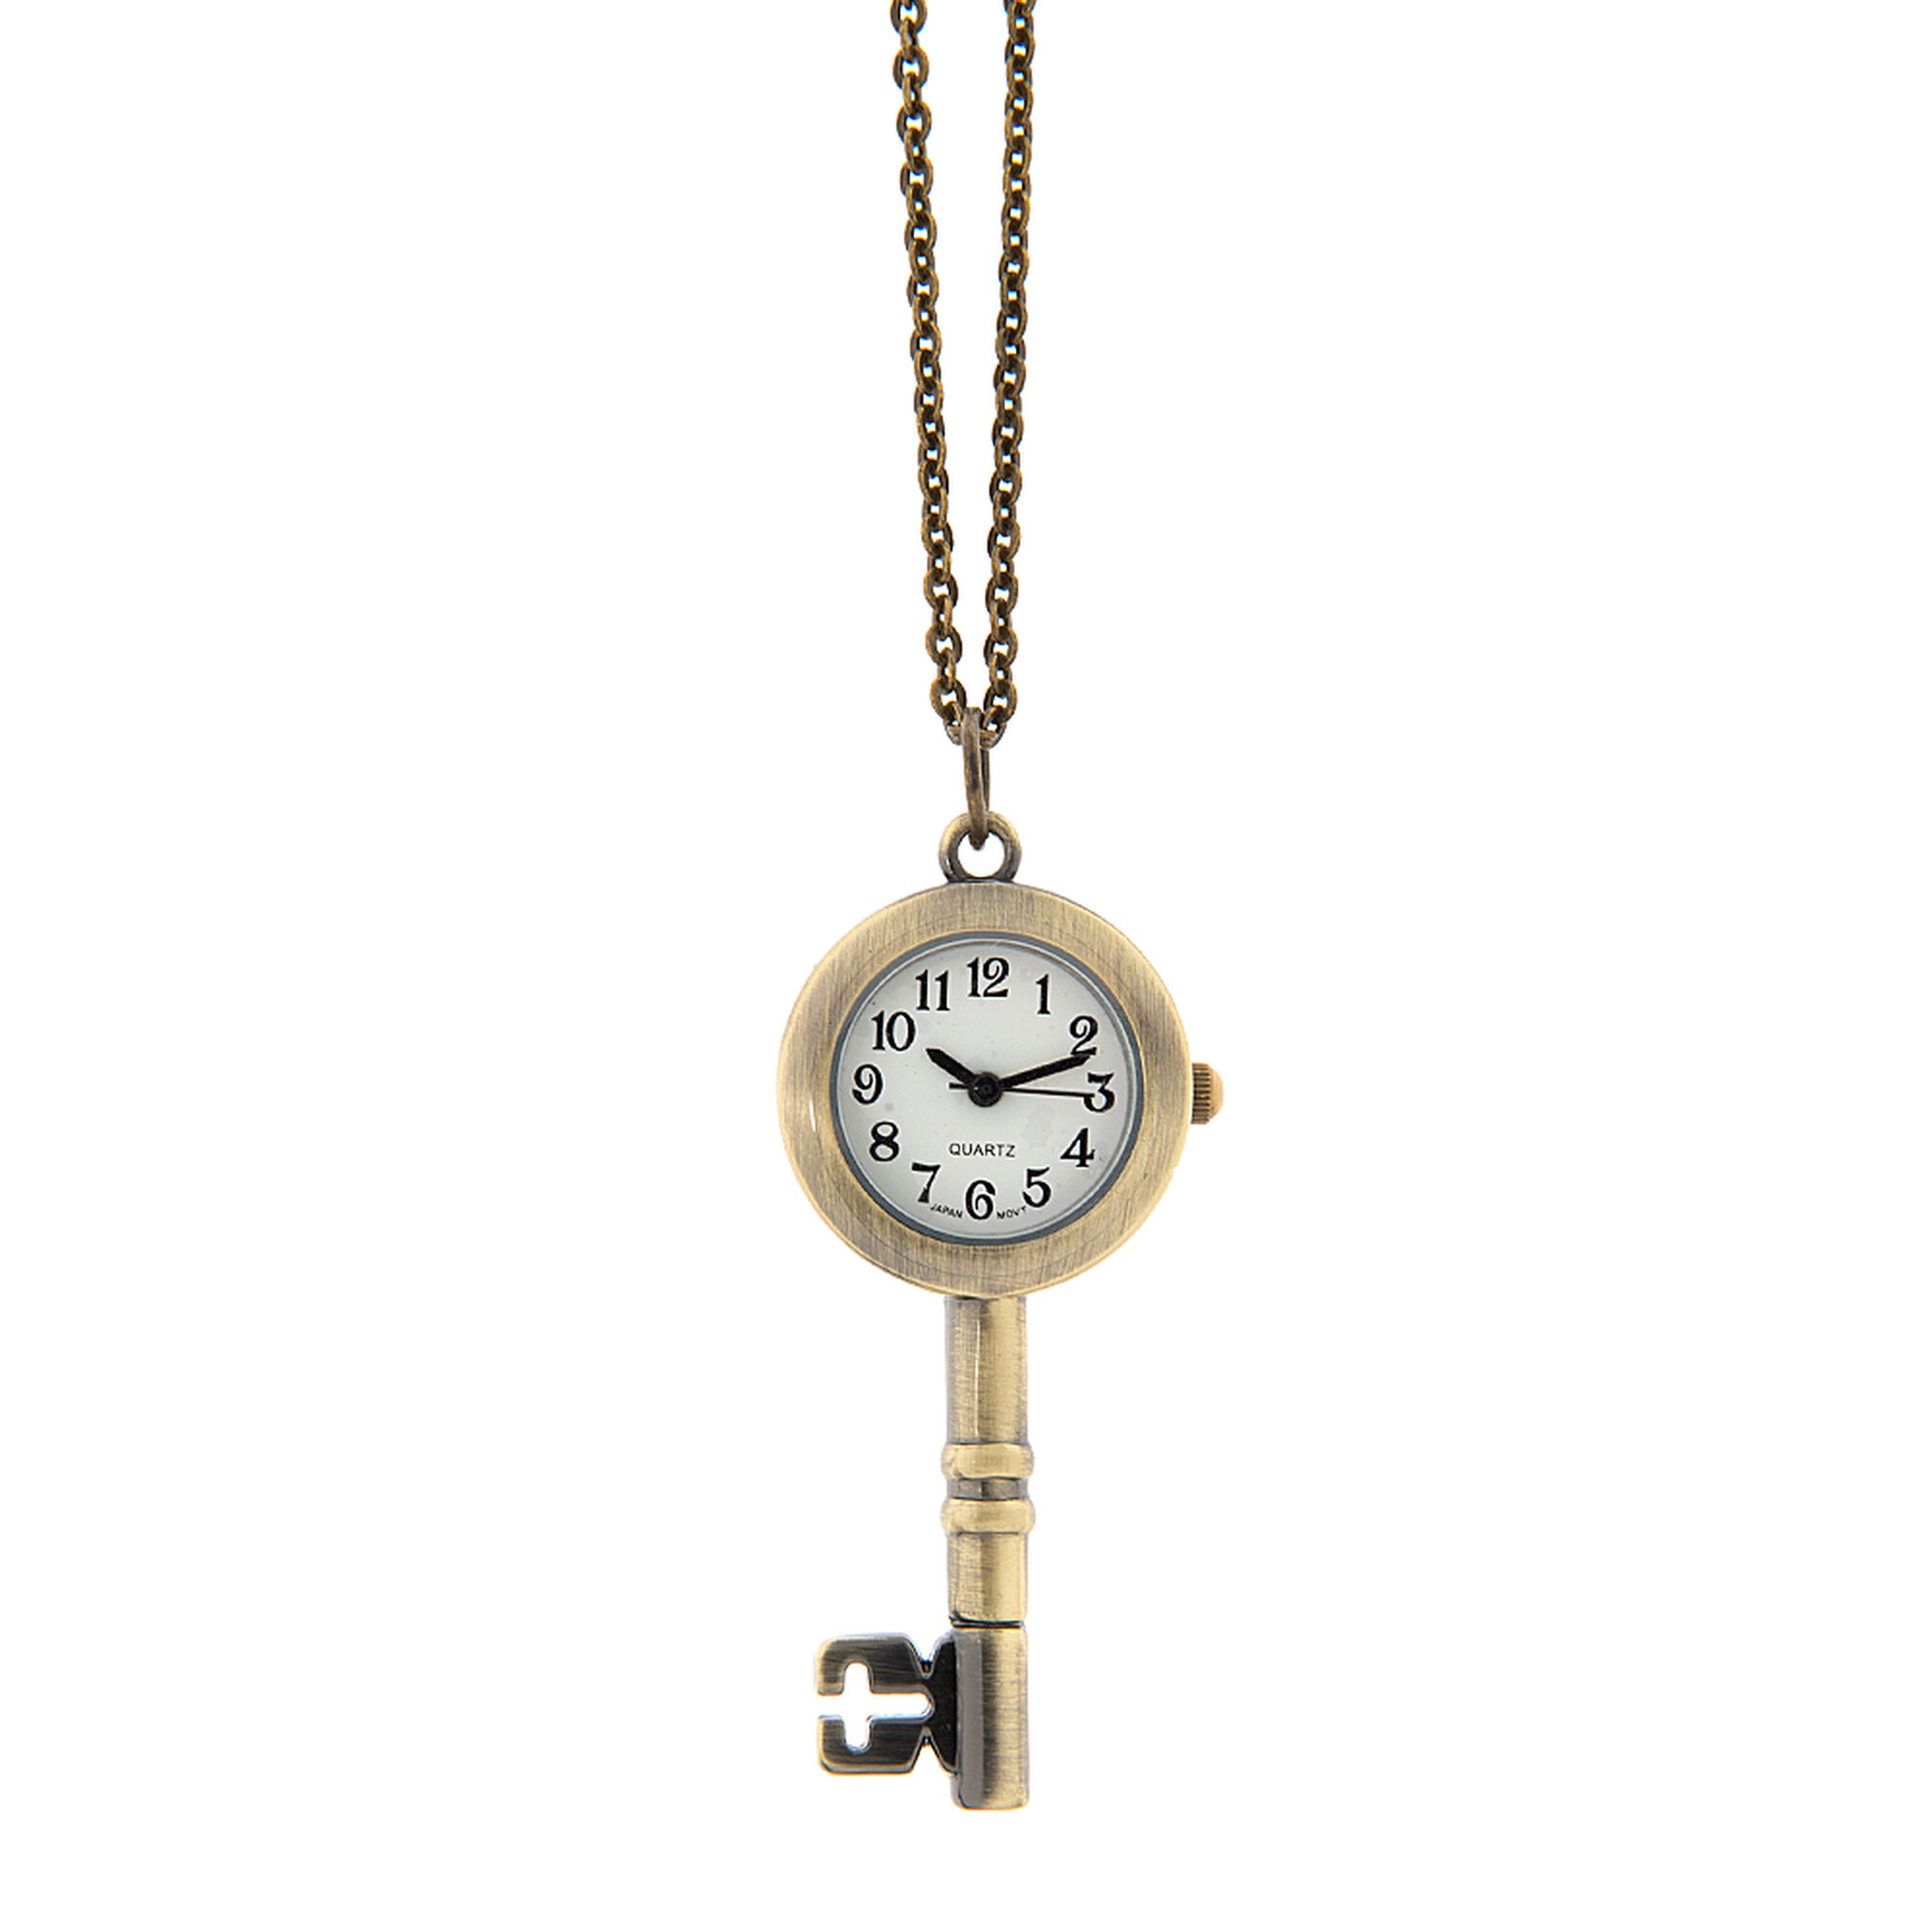 bucherer ball pendant watch necklace products and chain to vintage